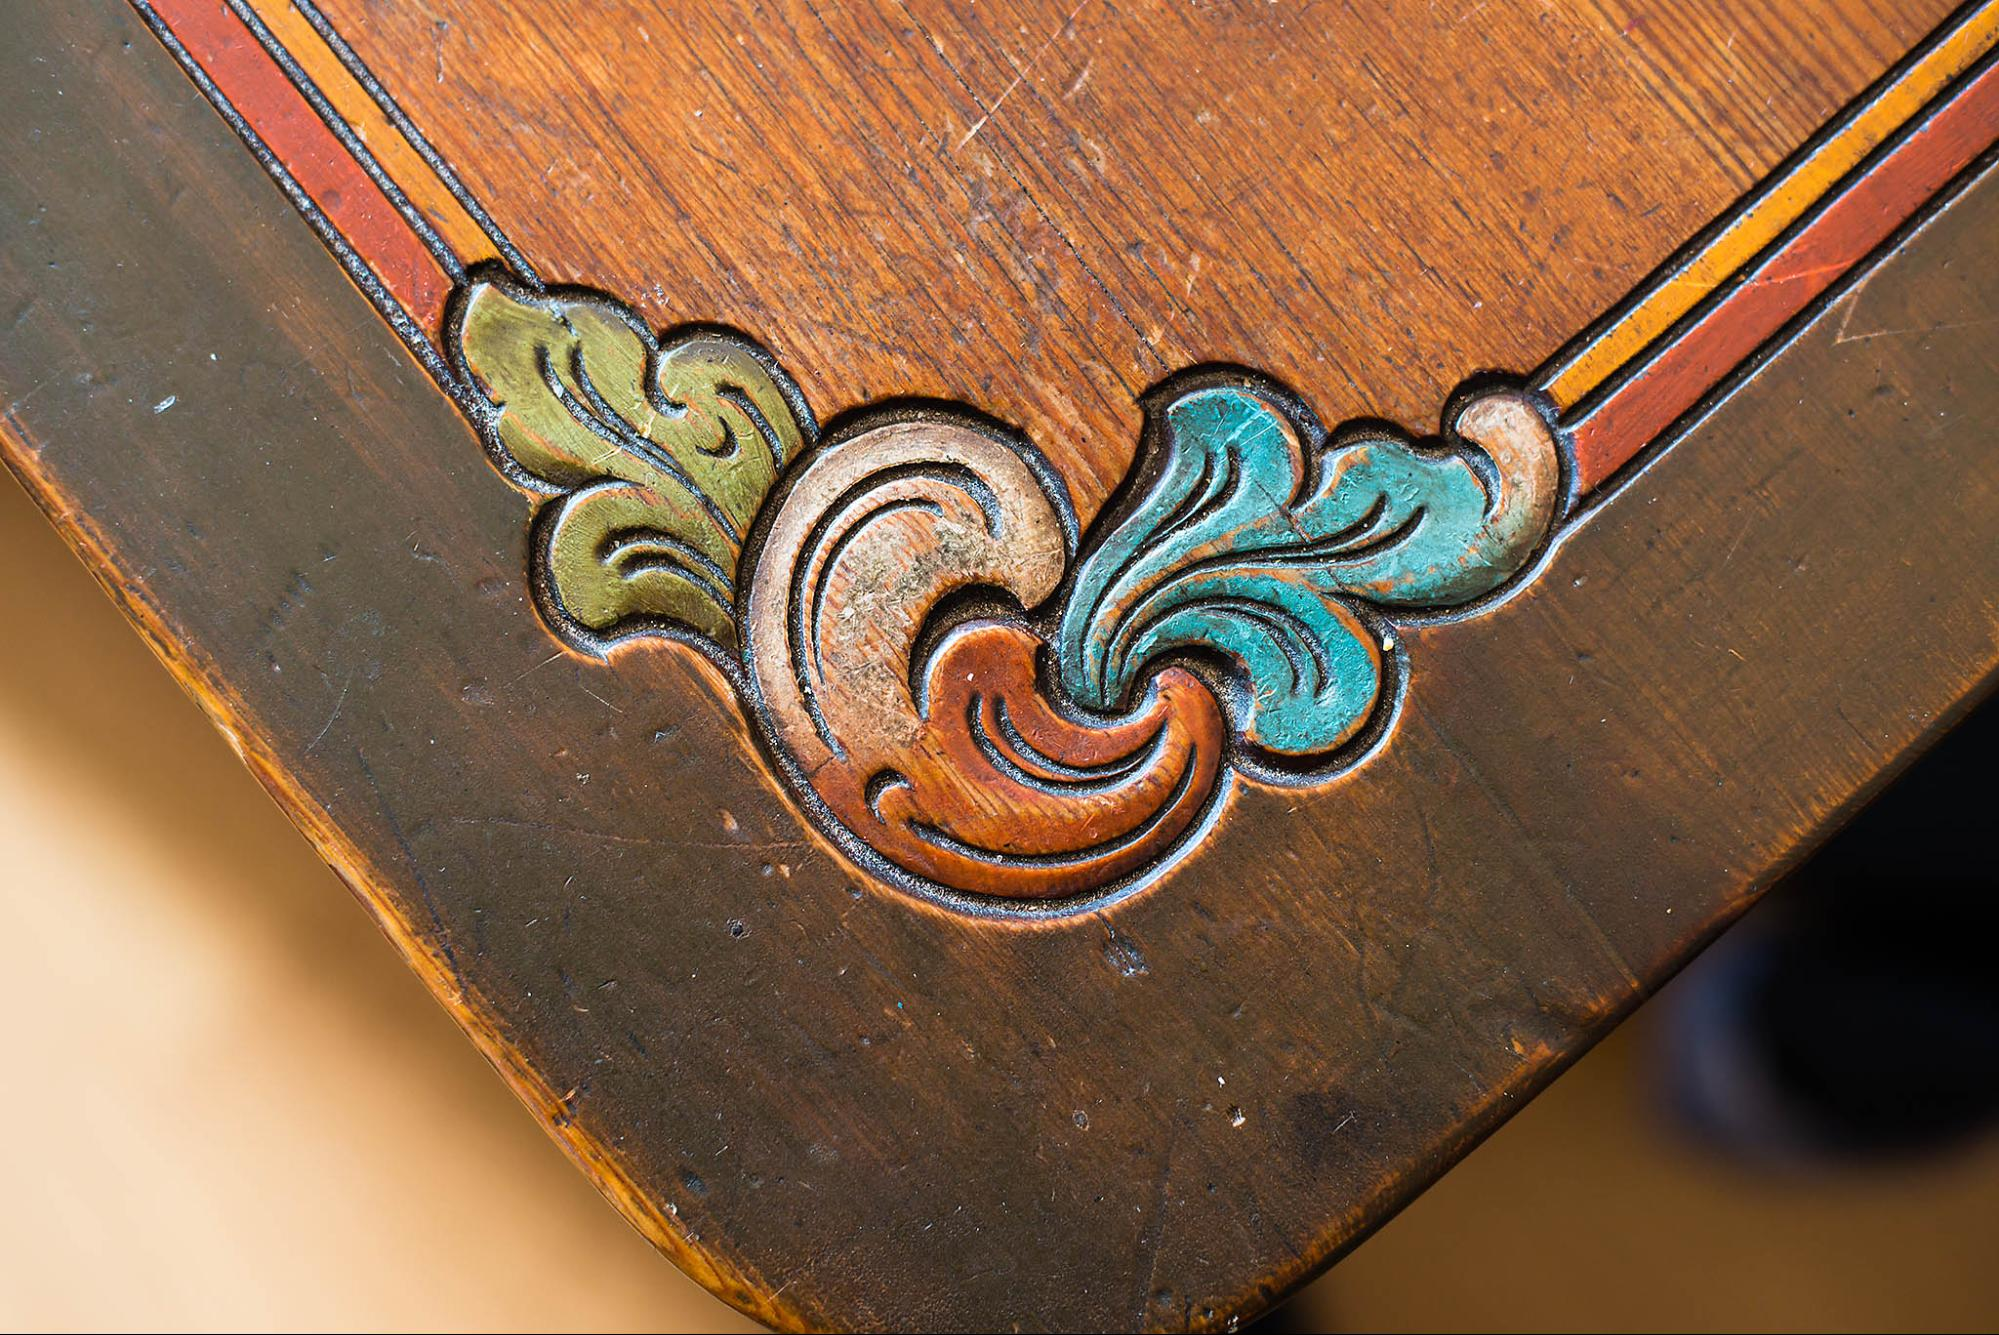 Rosemaling / The art of flower-decorative painting